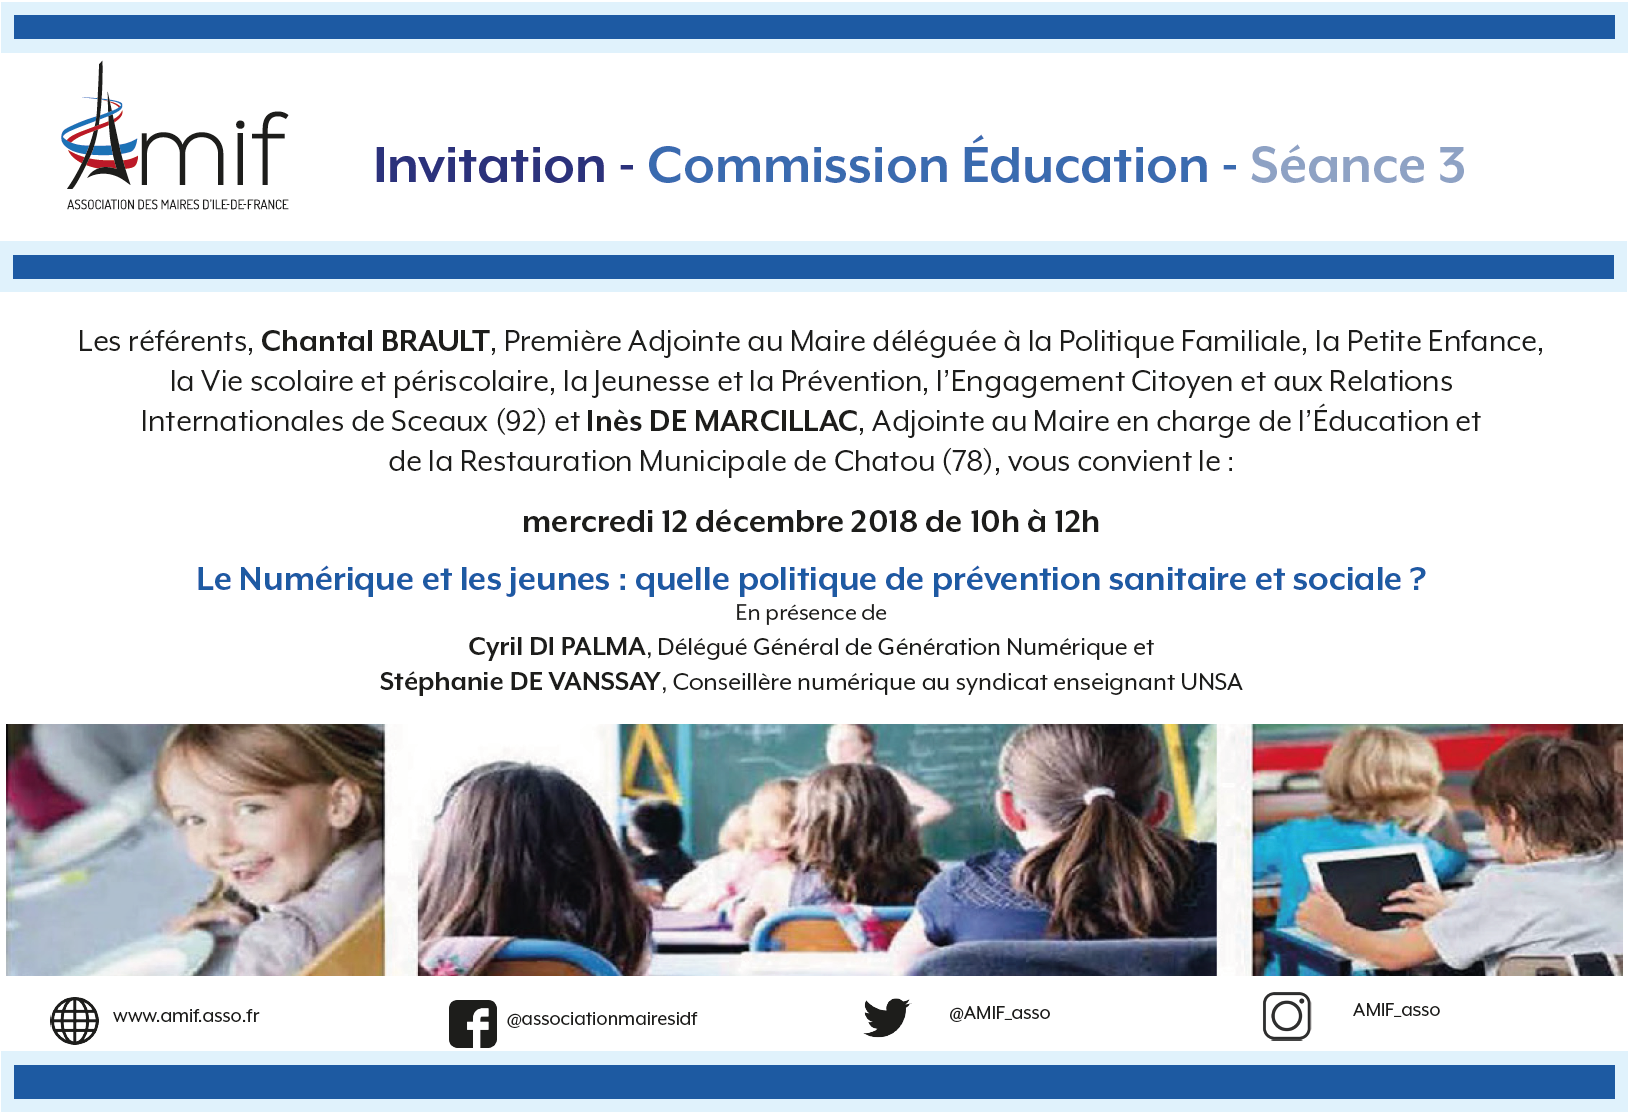 CommissionEducationSeance312decembre2018v4